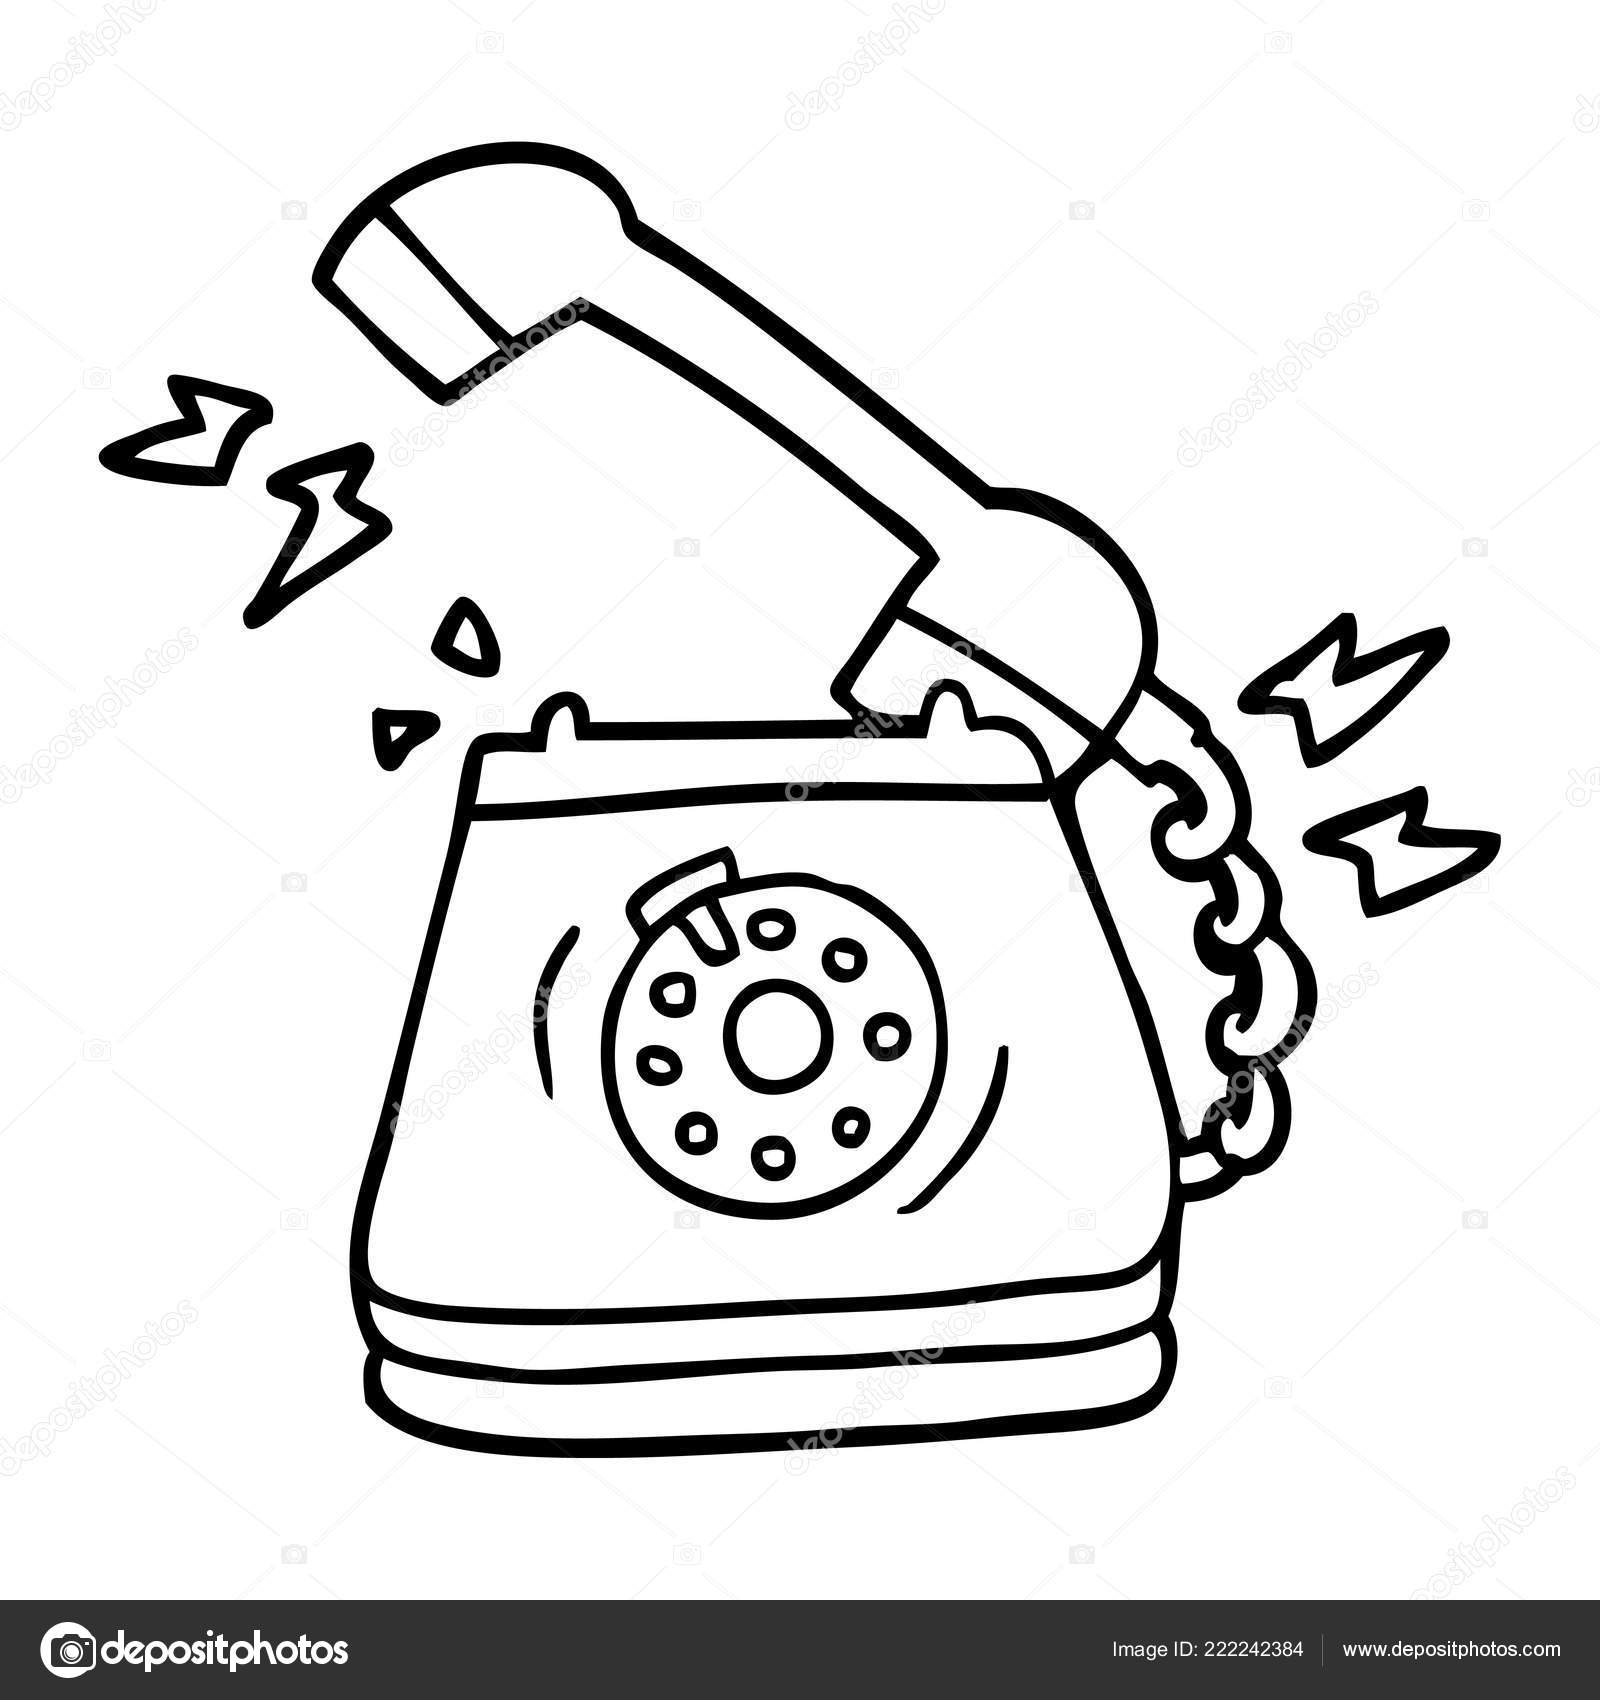 Old telephone drawing | Line Drawing Cartoon Old Rotary Dial